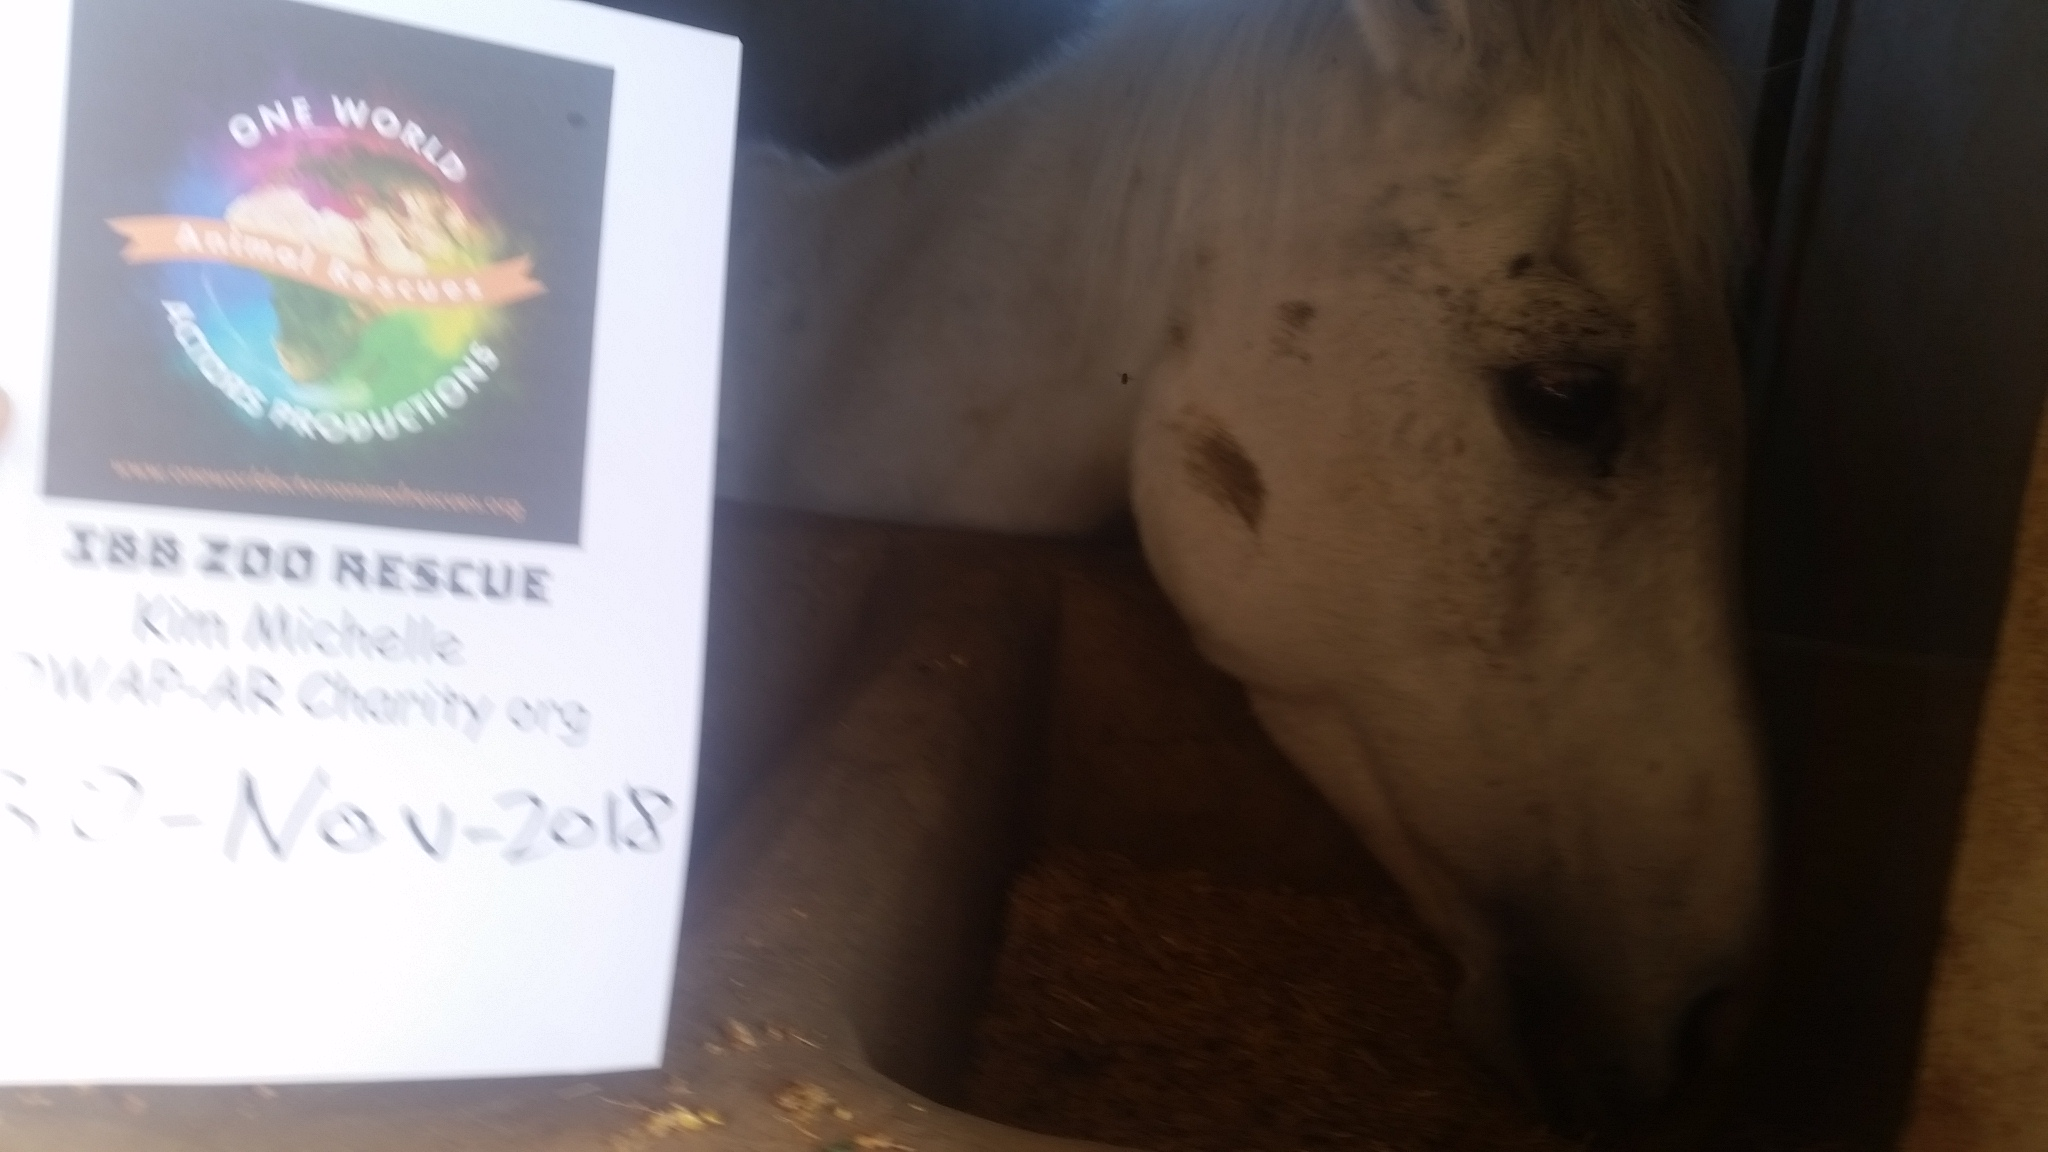 qrab 30 NOV 2018 OWAP-AR horse rescue eating right date wrong sign name.jpg